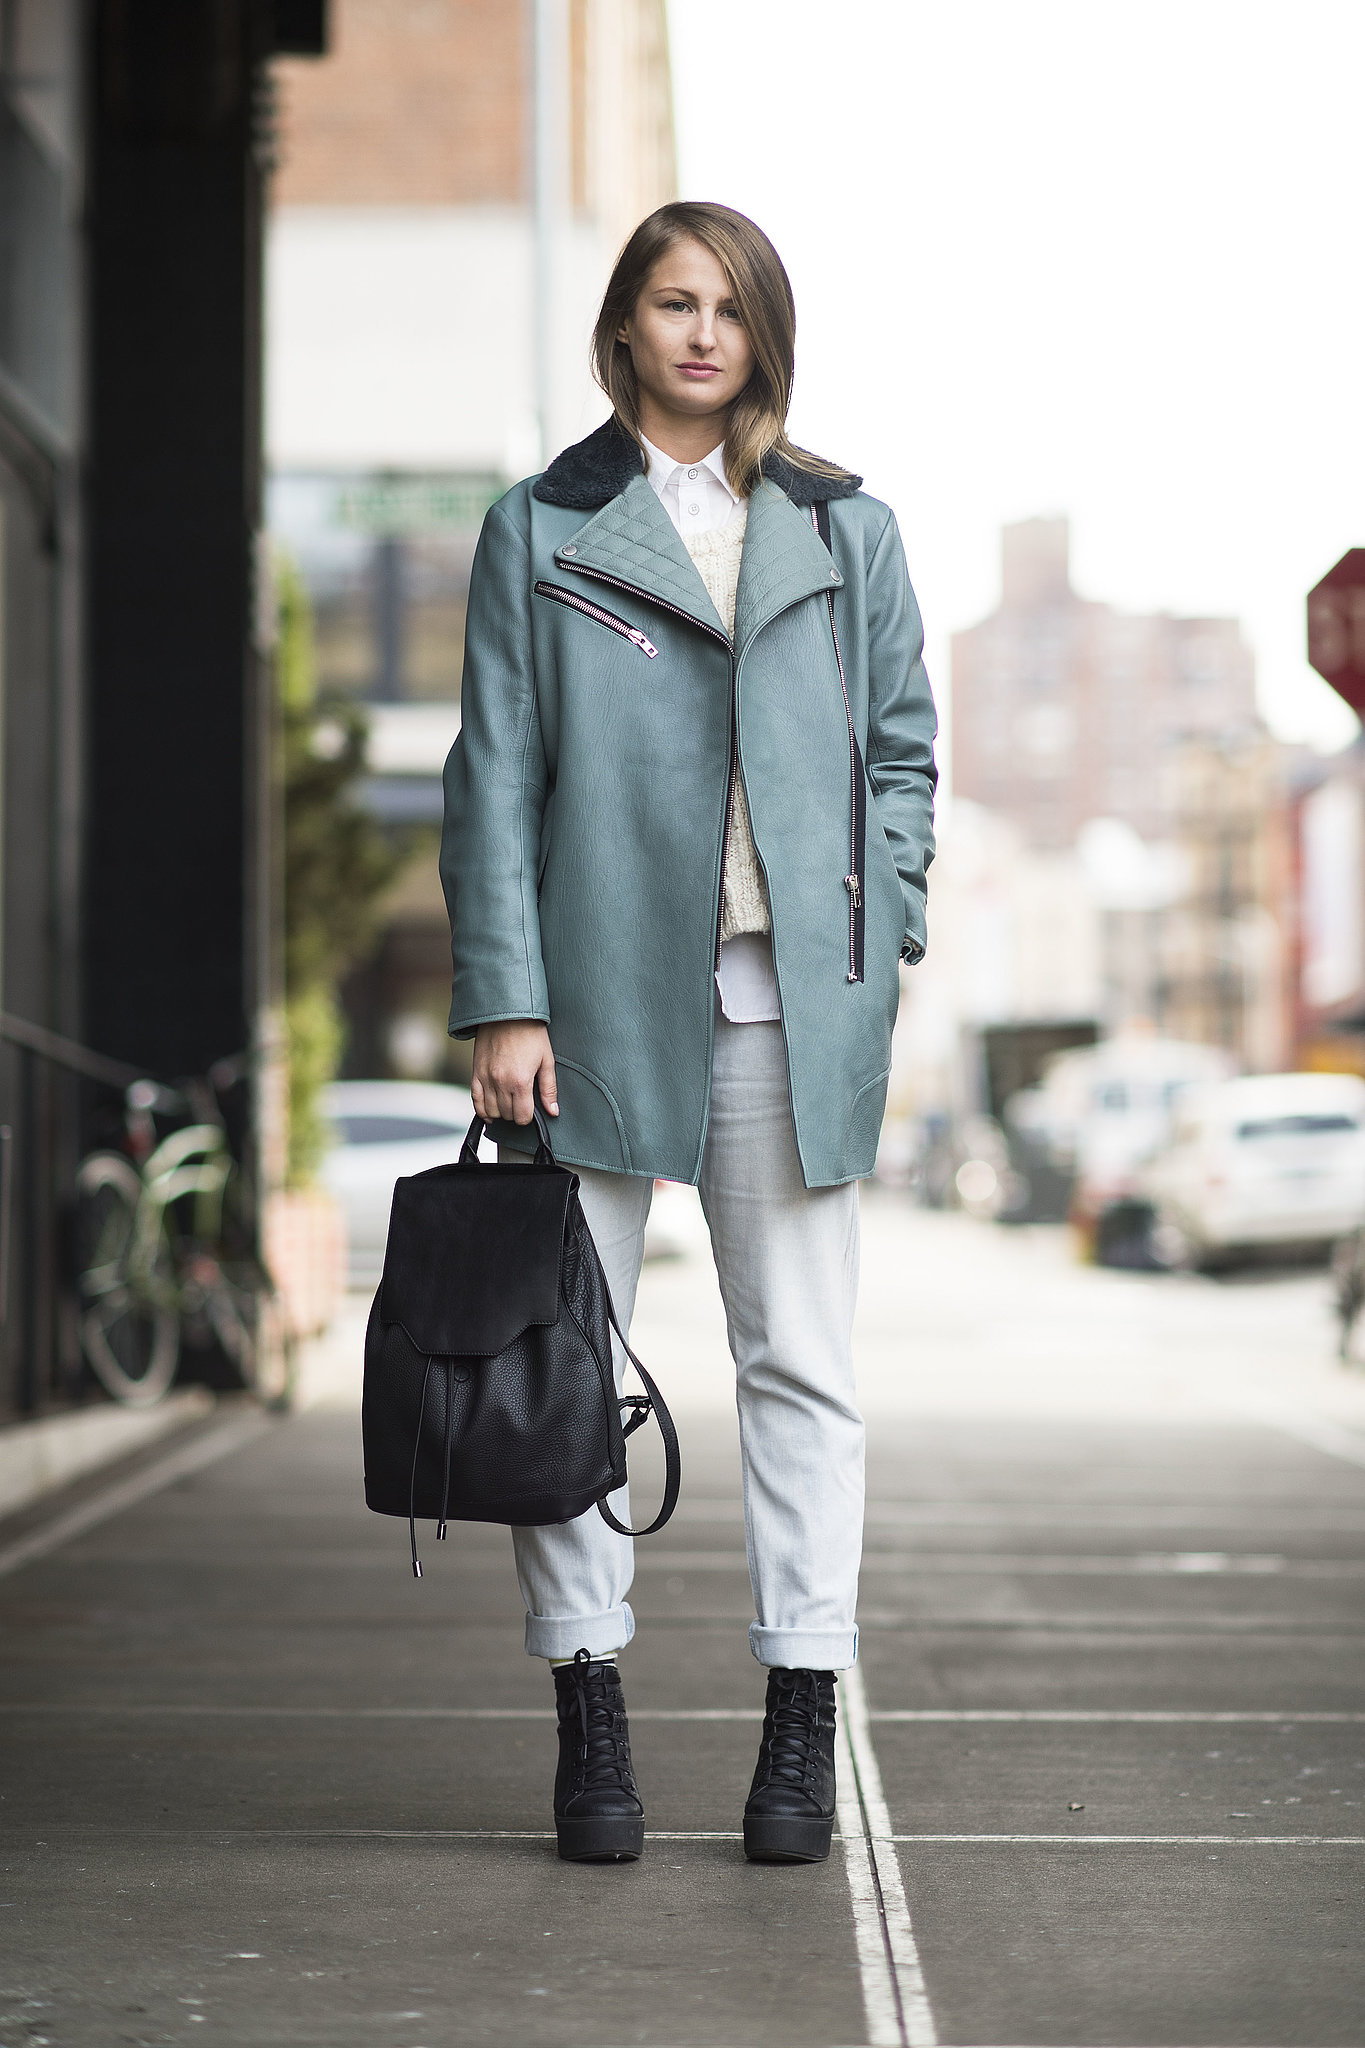 Winter Doesn 39 T Have To Mean Gray Days This Street Style Pro Added All The Street Chic